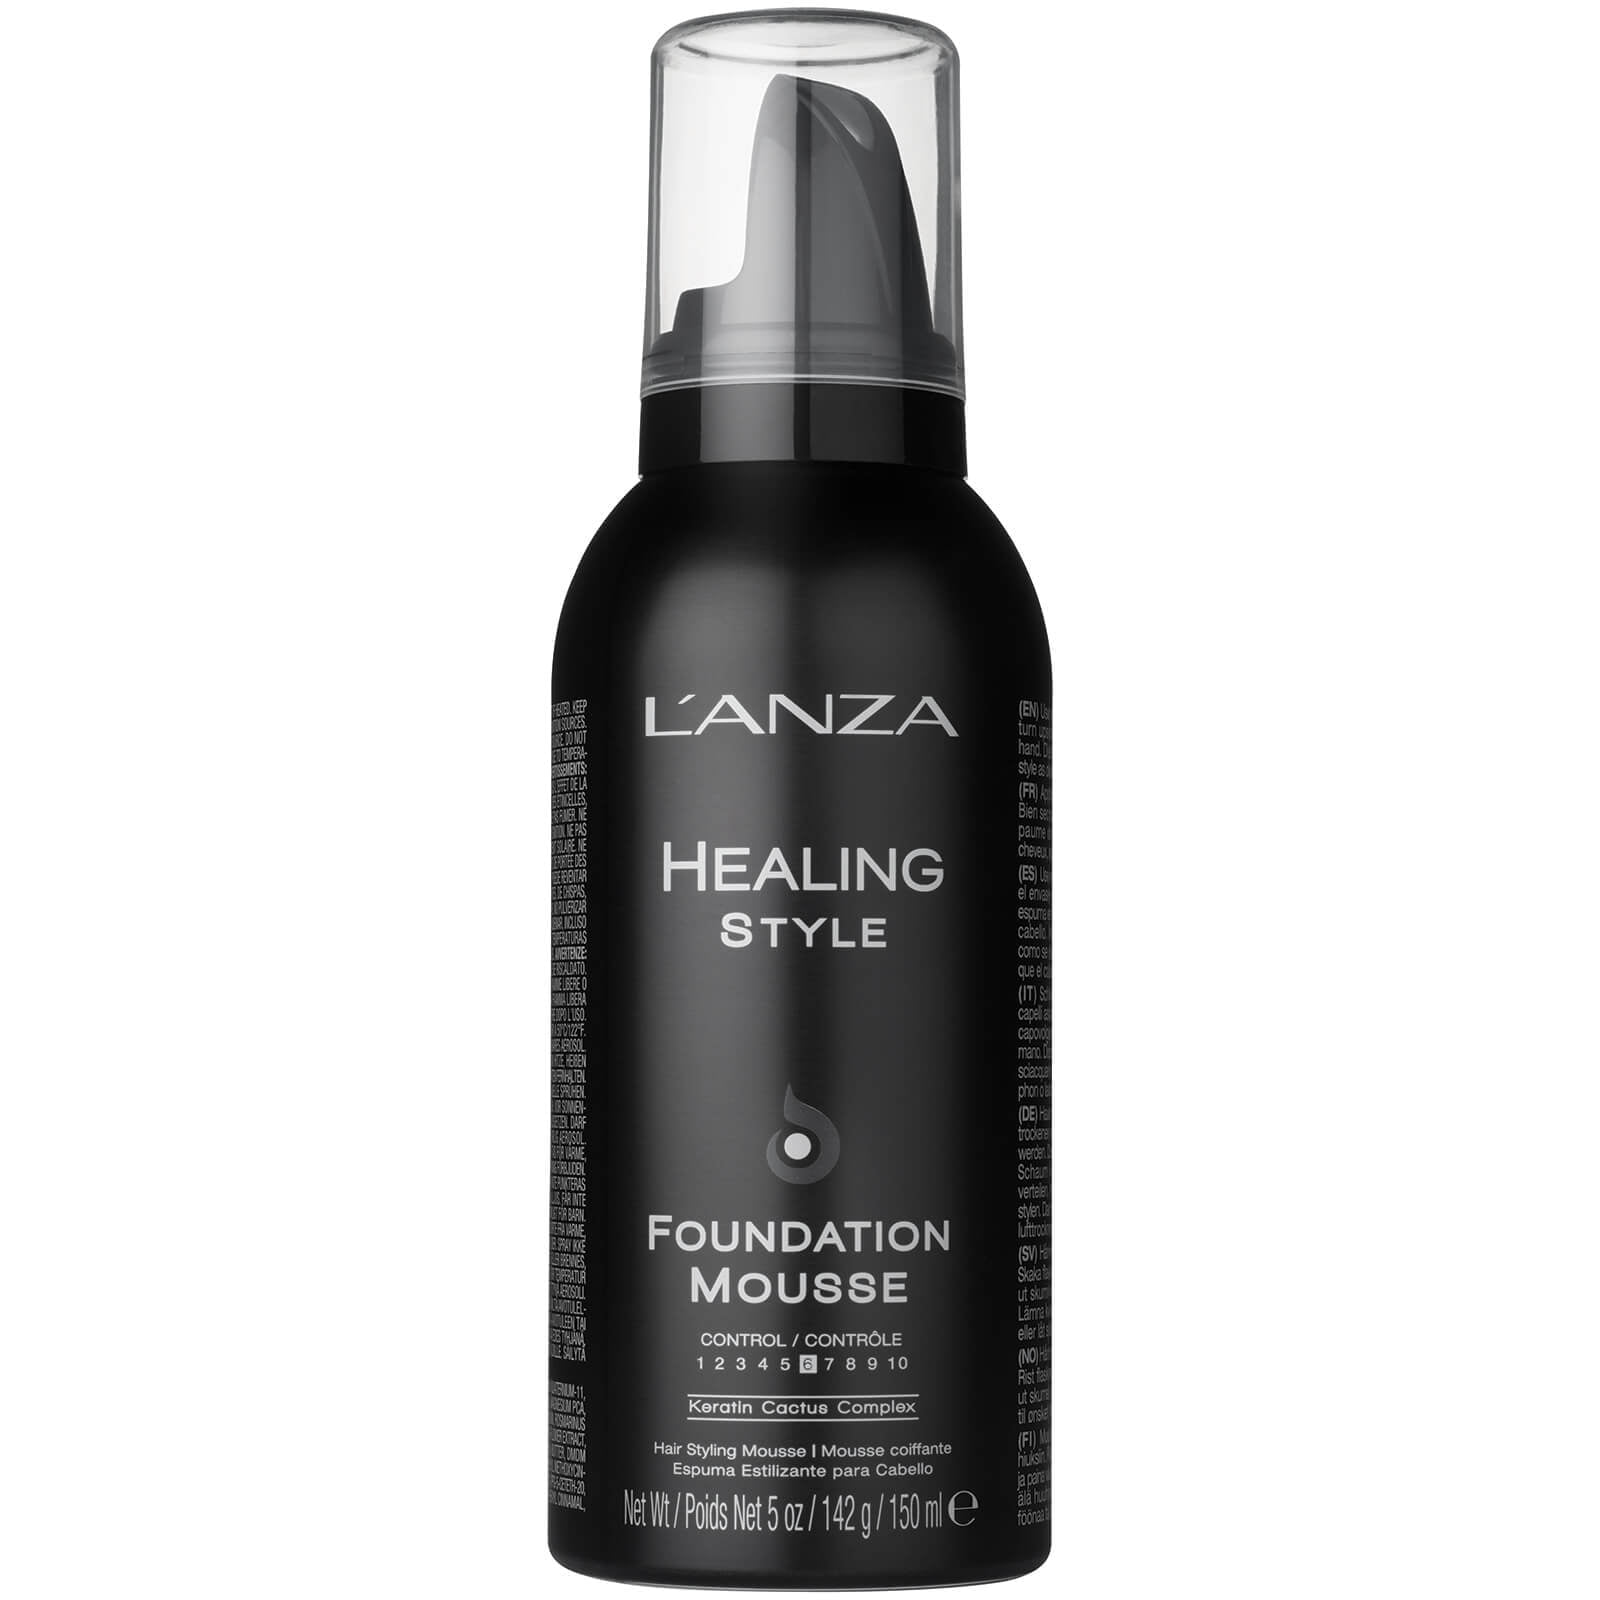 Healing Style Foundation Mousse 150ml - L`ANZA